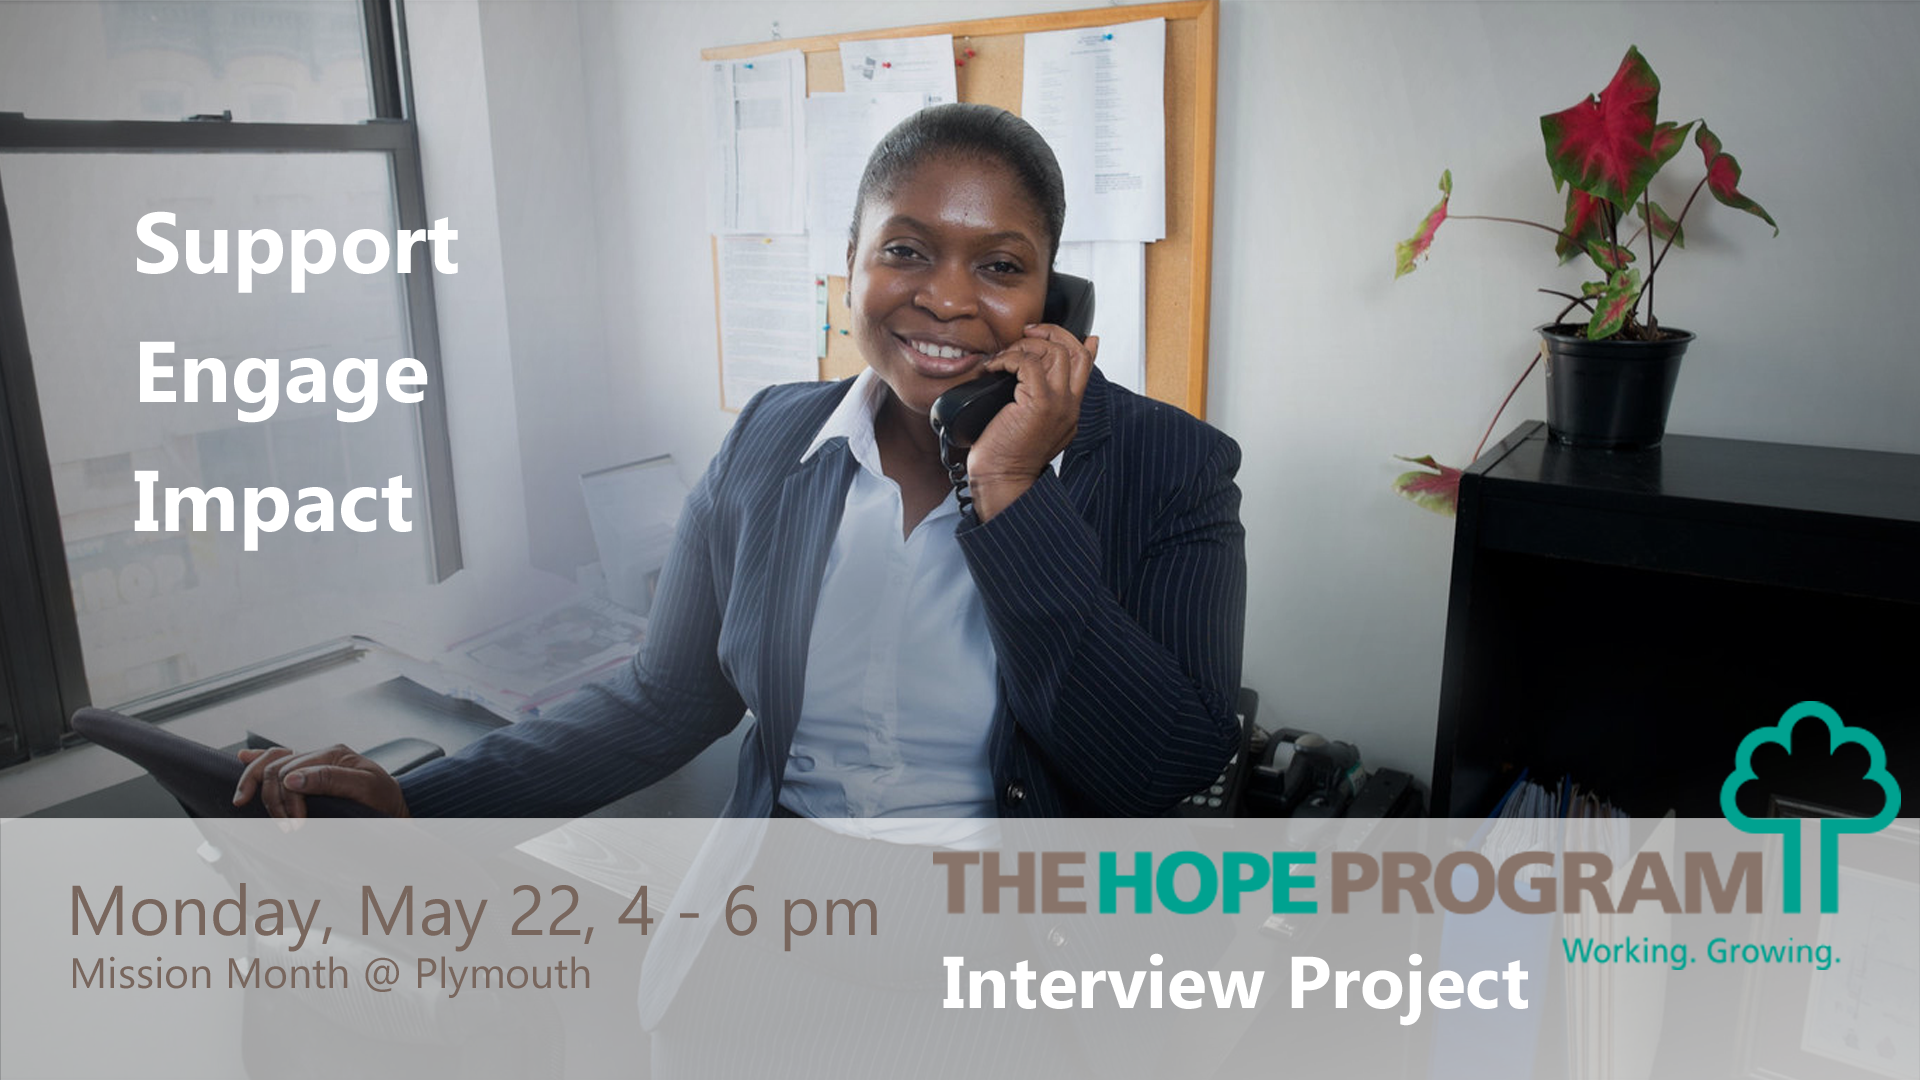 THE HOPE PROGRAM - MONDAY, MAY 22, 4-6 PMThe HOPE PROGRAM empowers New Yorkers living in poverty to achieve economic self-sufficiency through employment and advancement.Join us and assist HOPE students by providing one-on-one mock interviews to better prepare them to enter the workforce.